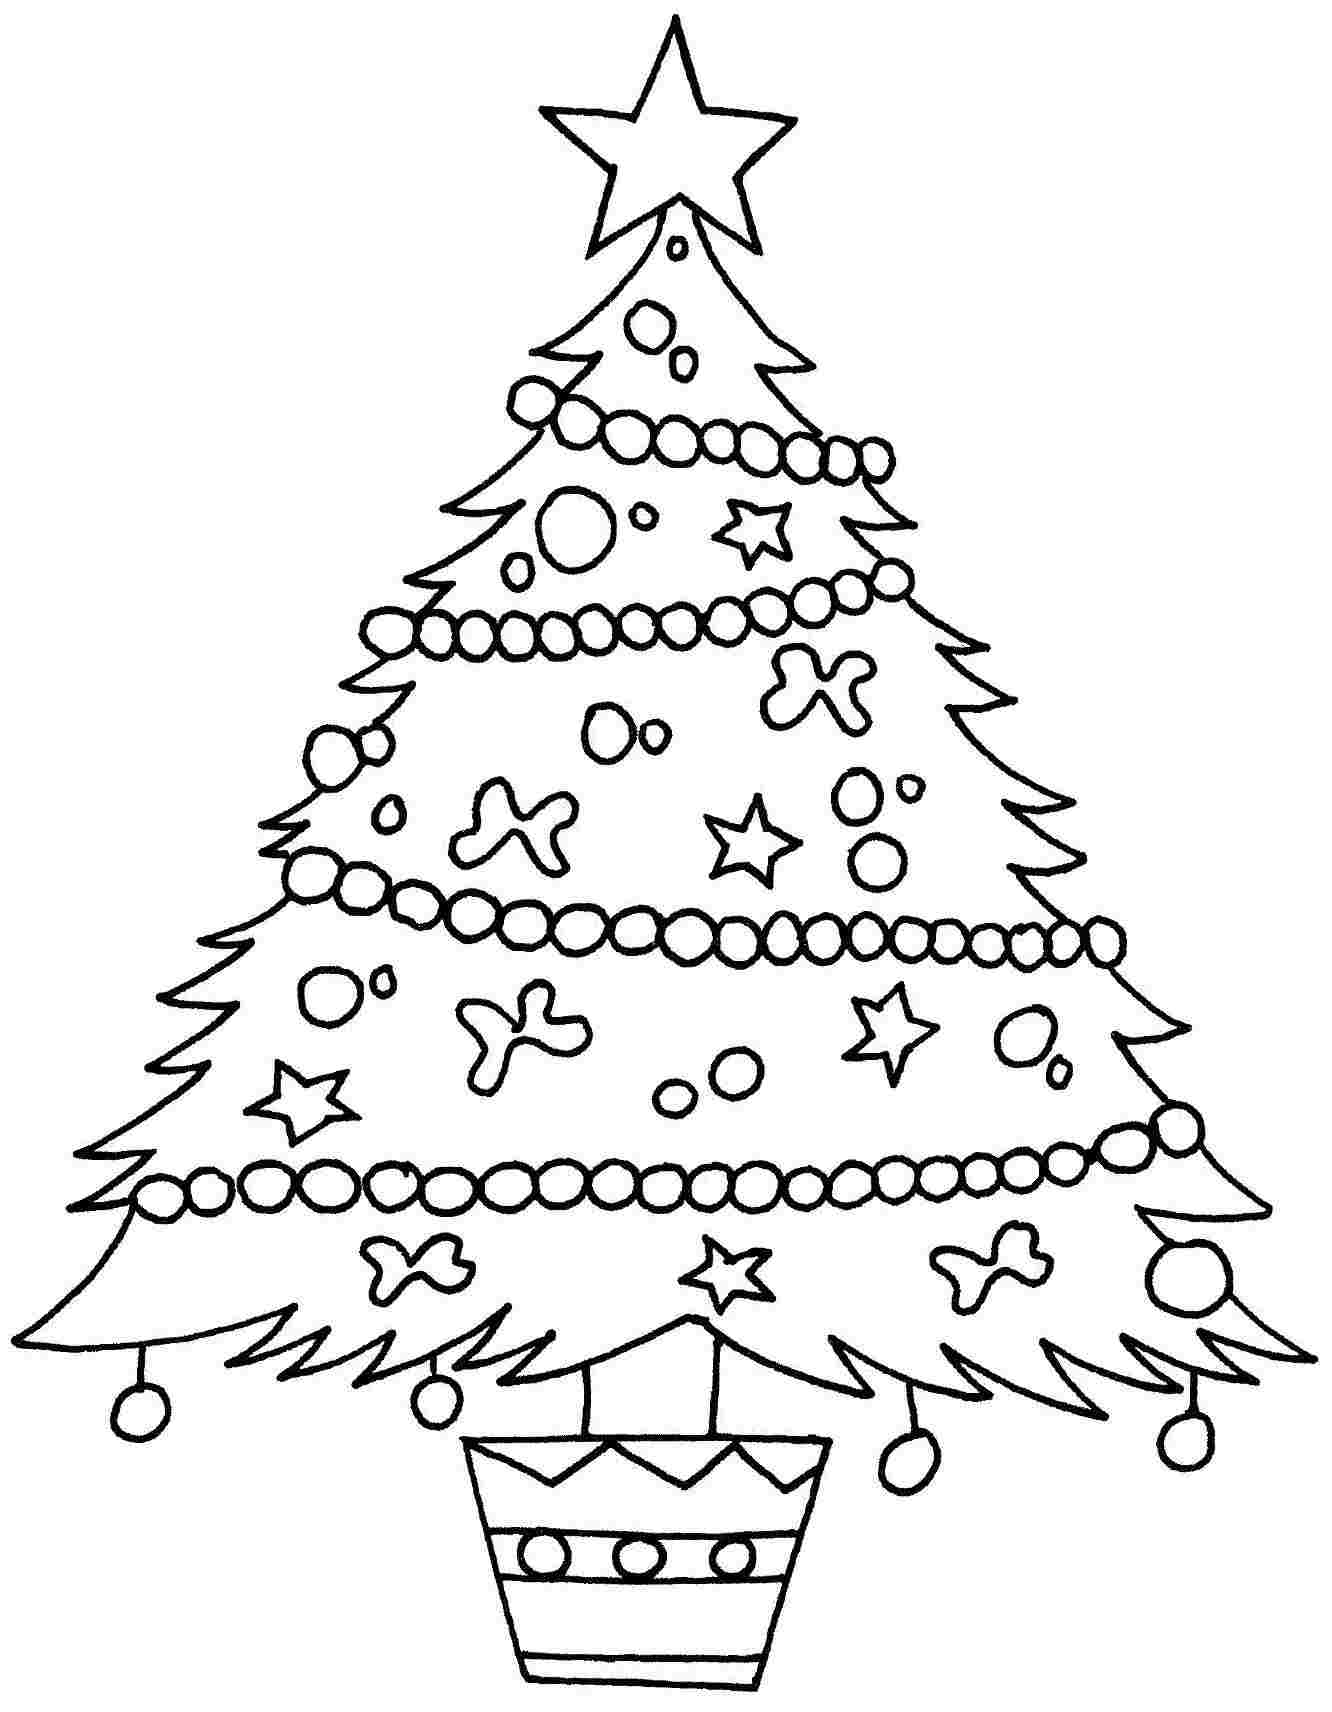 Easy Christmas Tree Drawing At Getdrawings Com Free For Personal